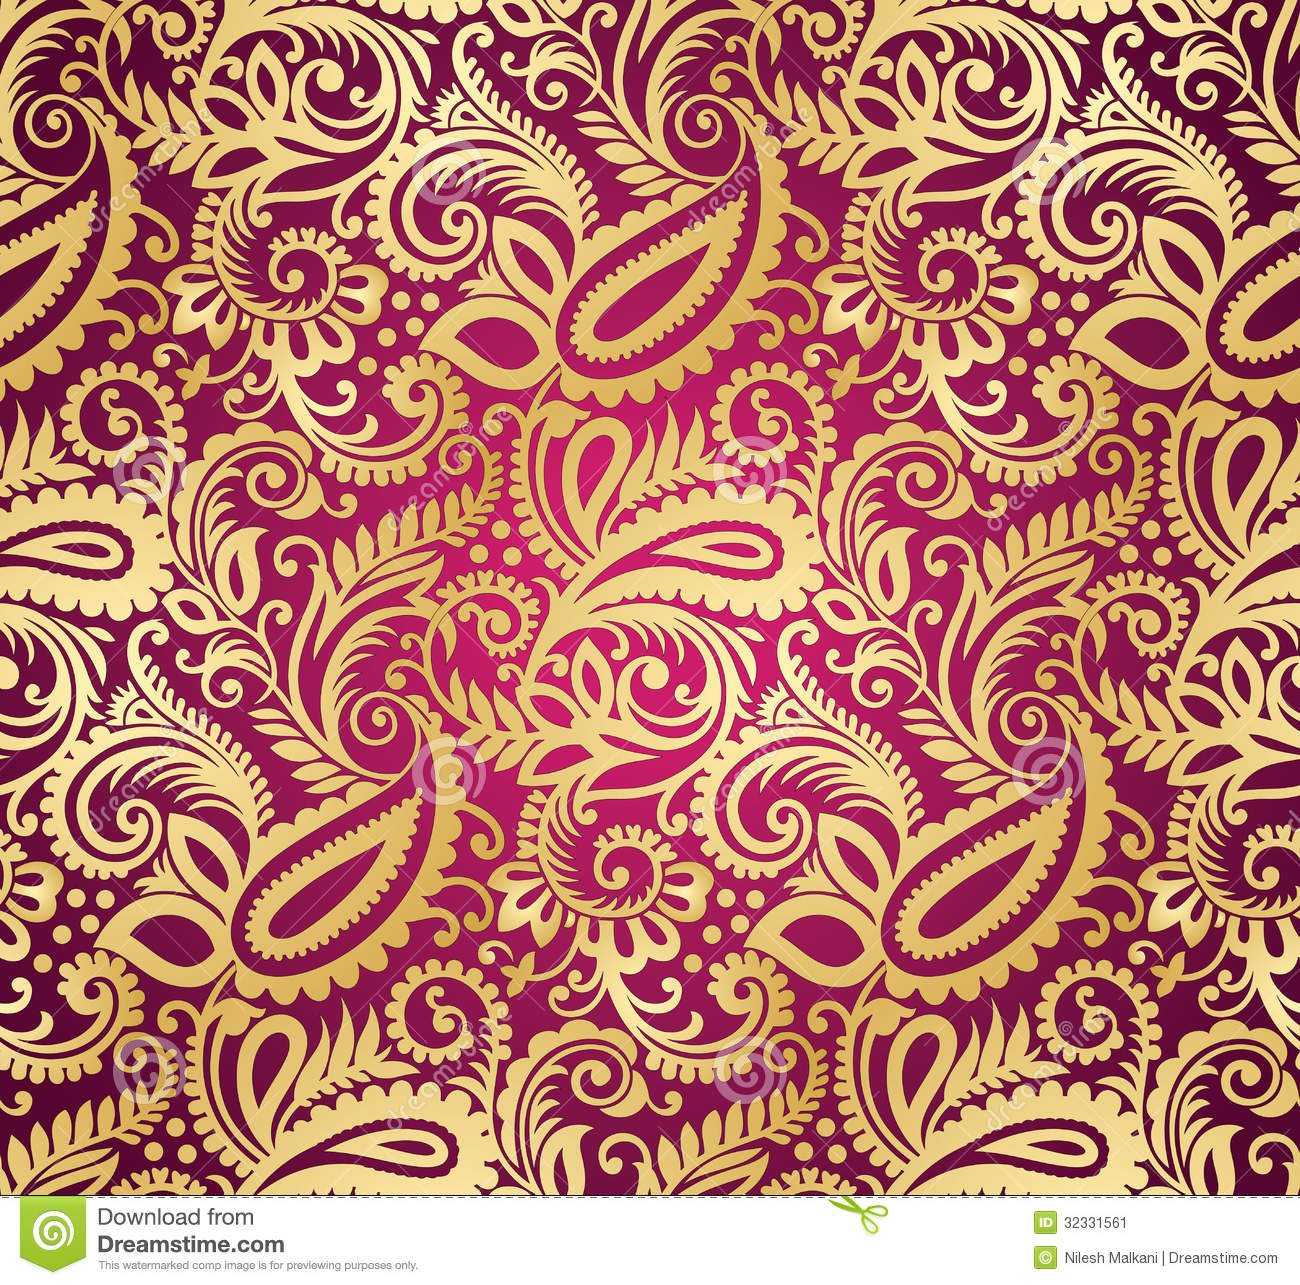 Paisley wallpaper peinture for Paisley wallpaper